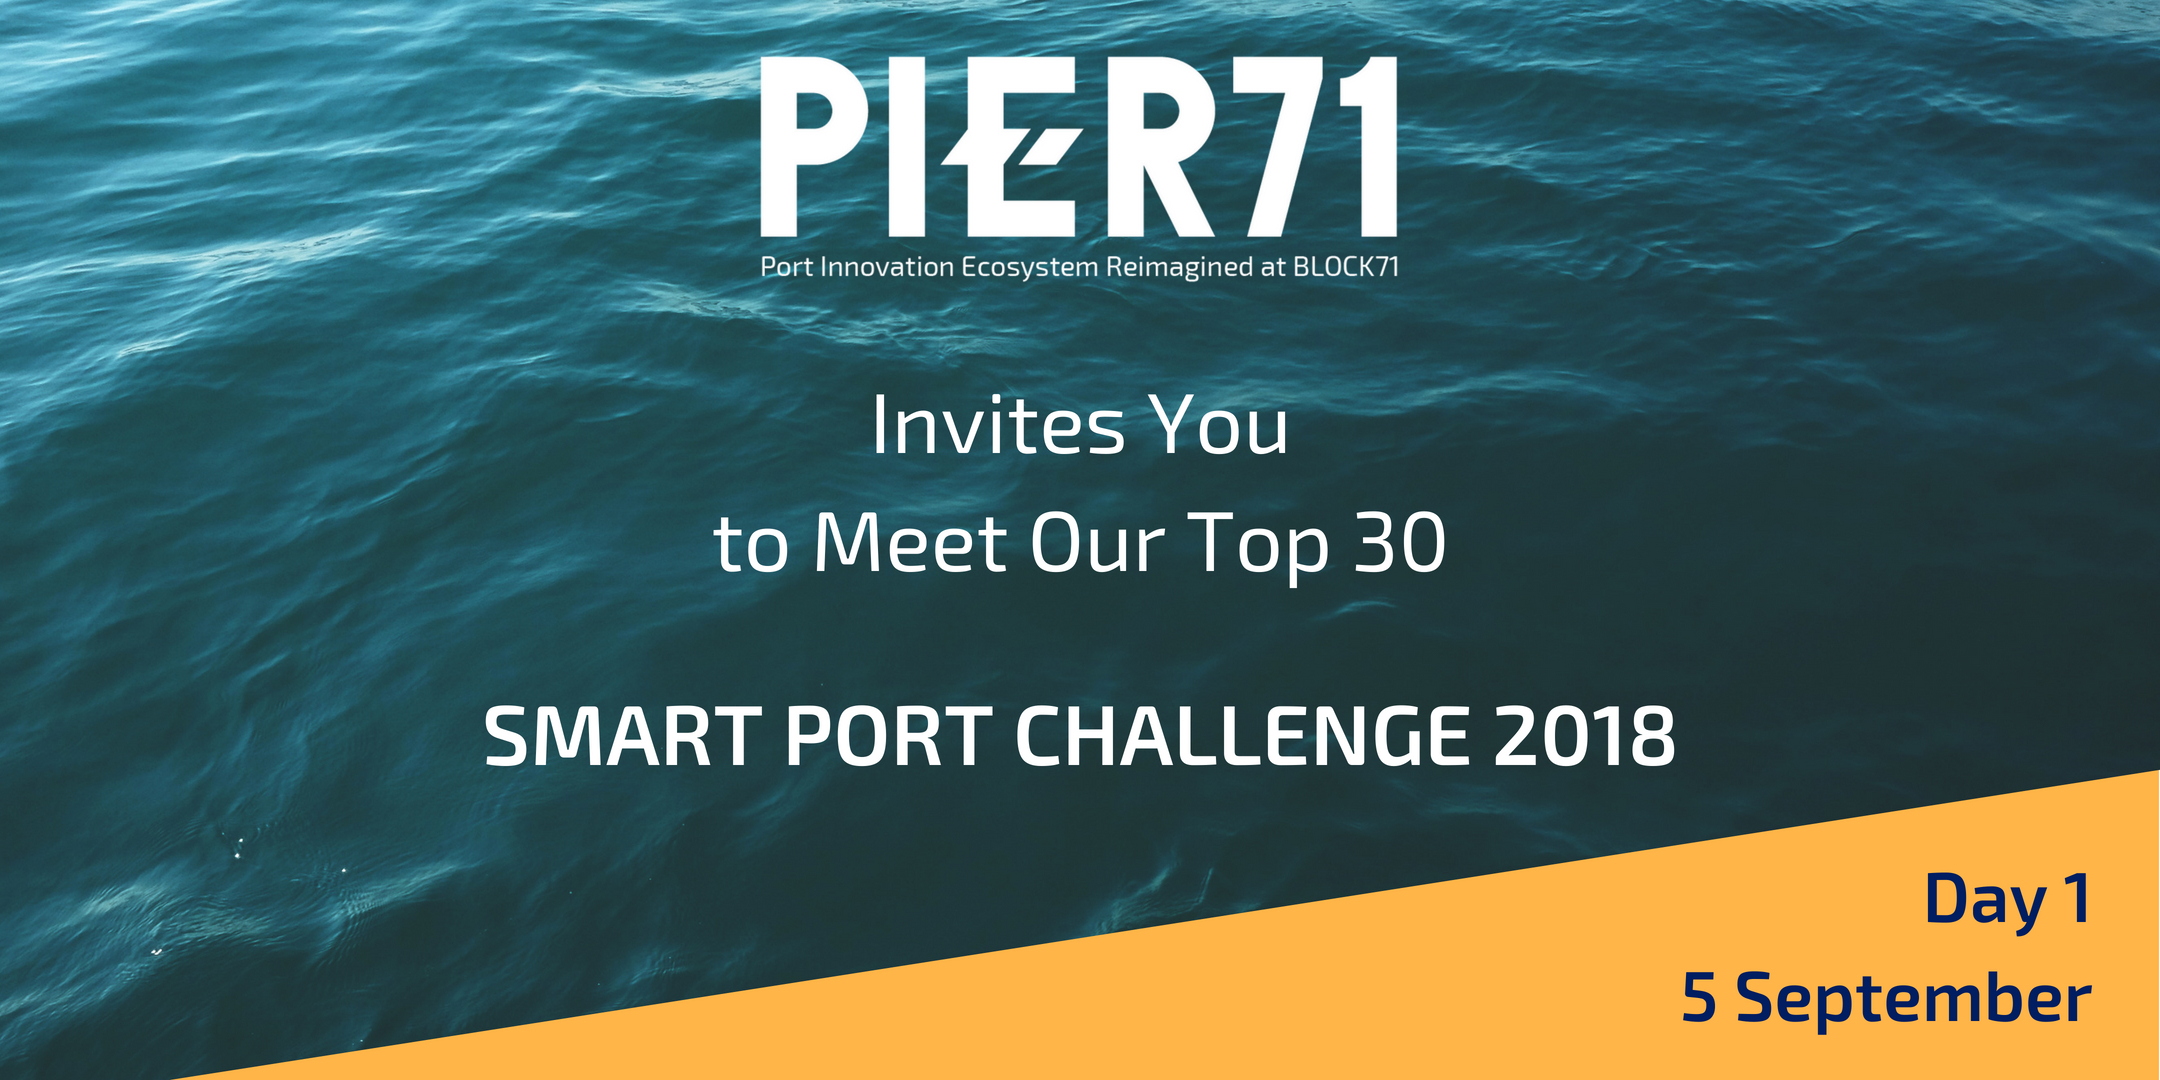 PIER71 Smart Port Challenge – Meet the Top 30 (Day 1)